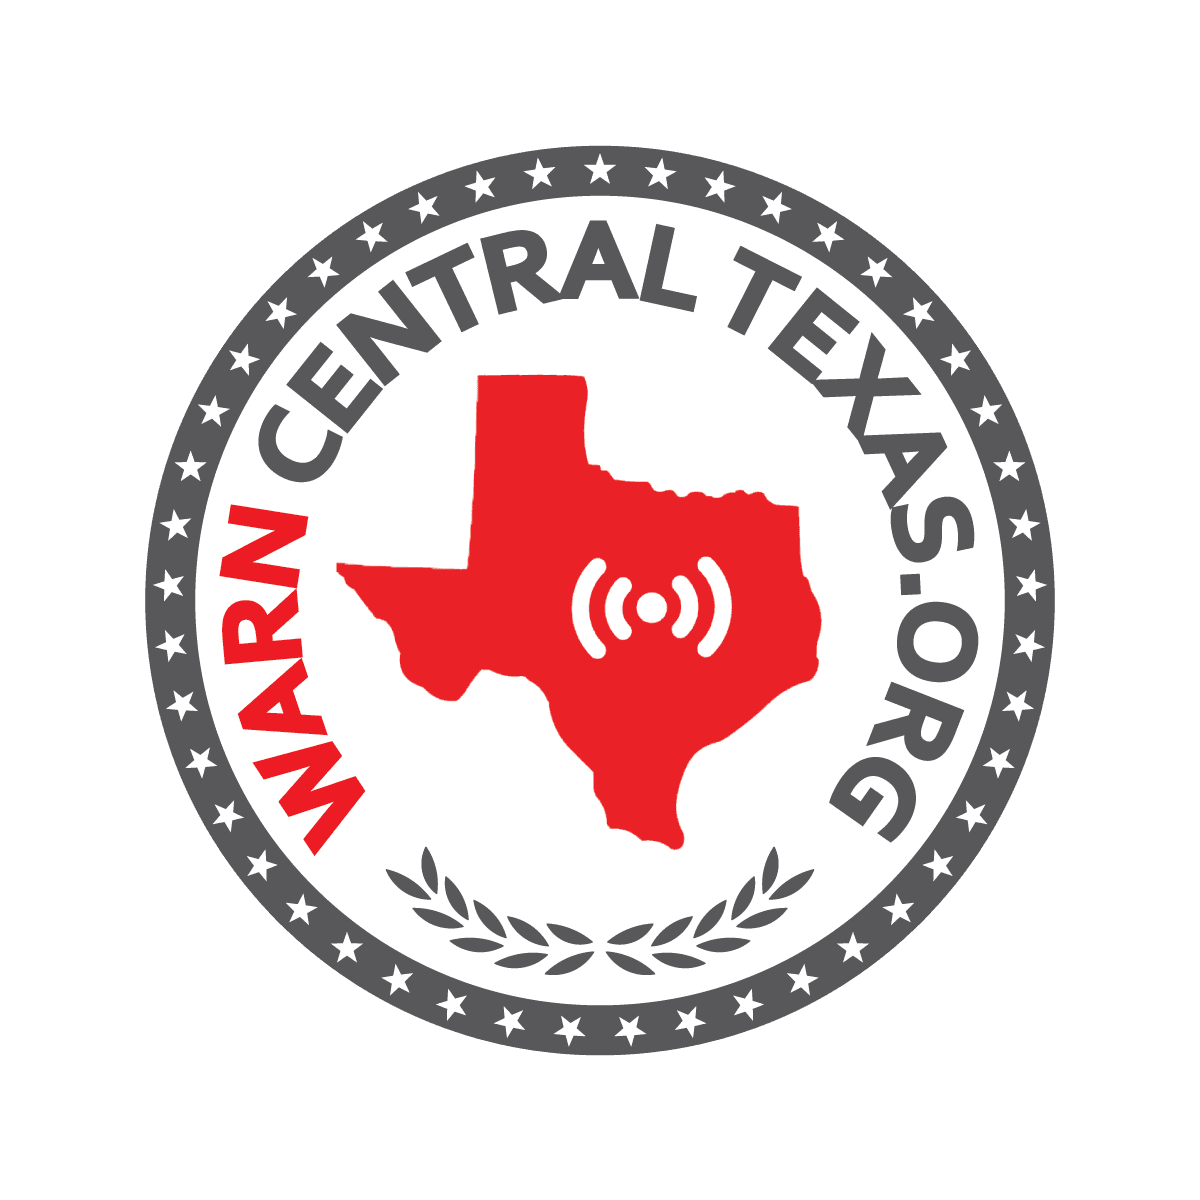 Warn Central Texas logo